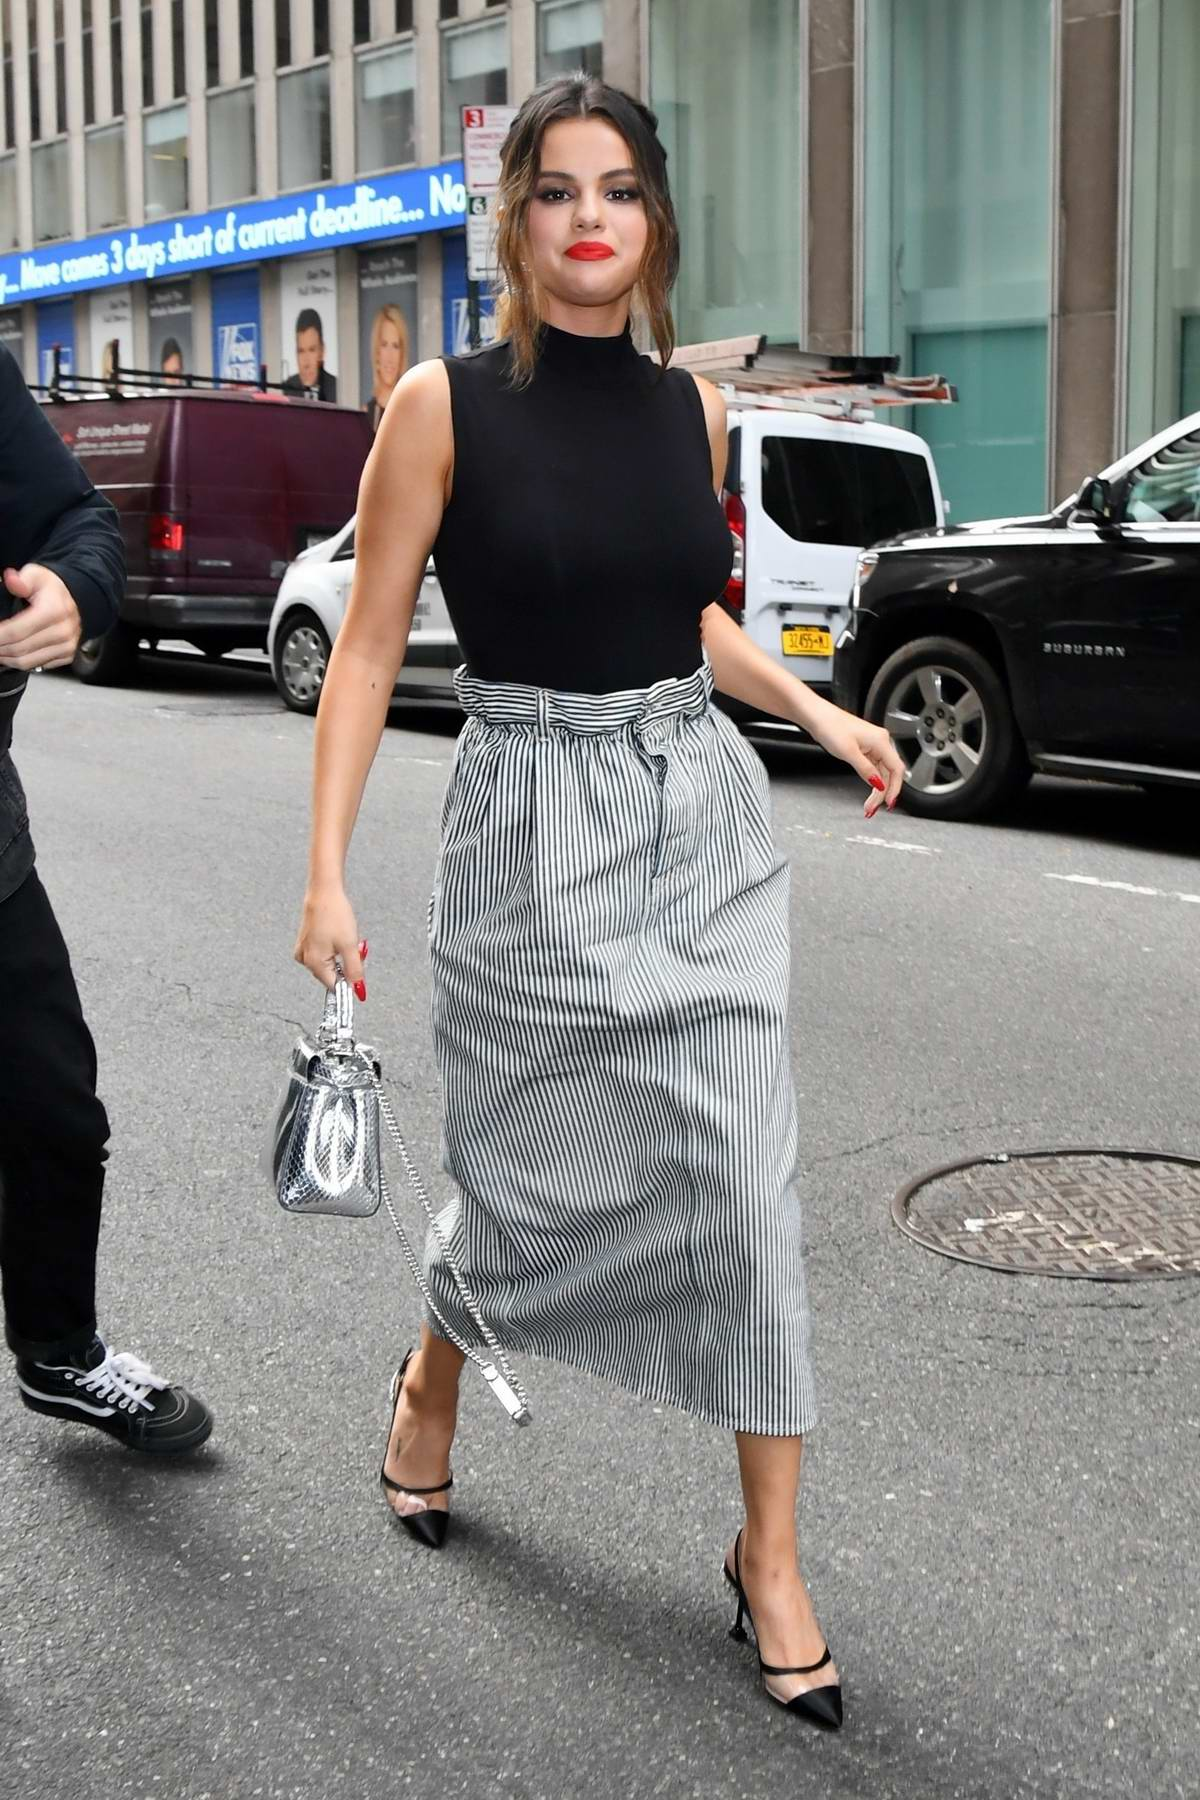 Selena Gomez looks pretty in a black top paired with striped grey skirt while visiting SiriusXM Radio in New York City